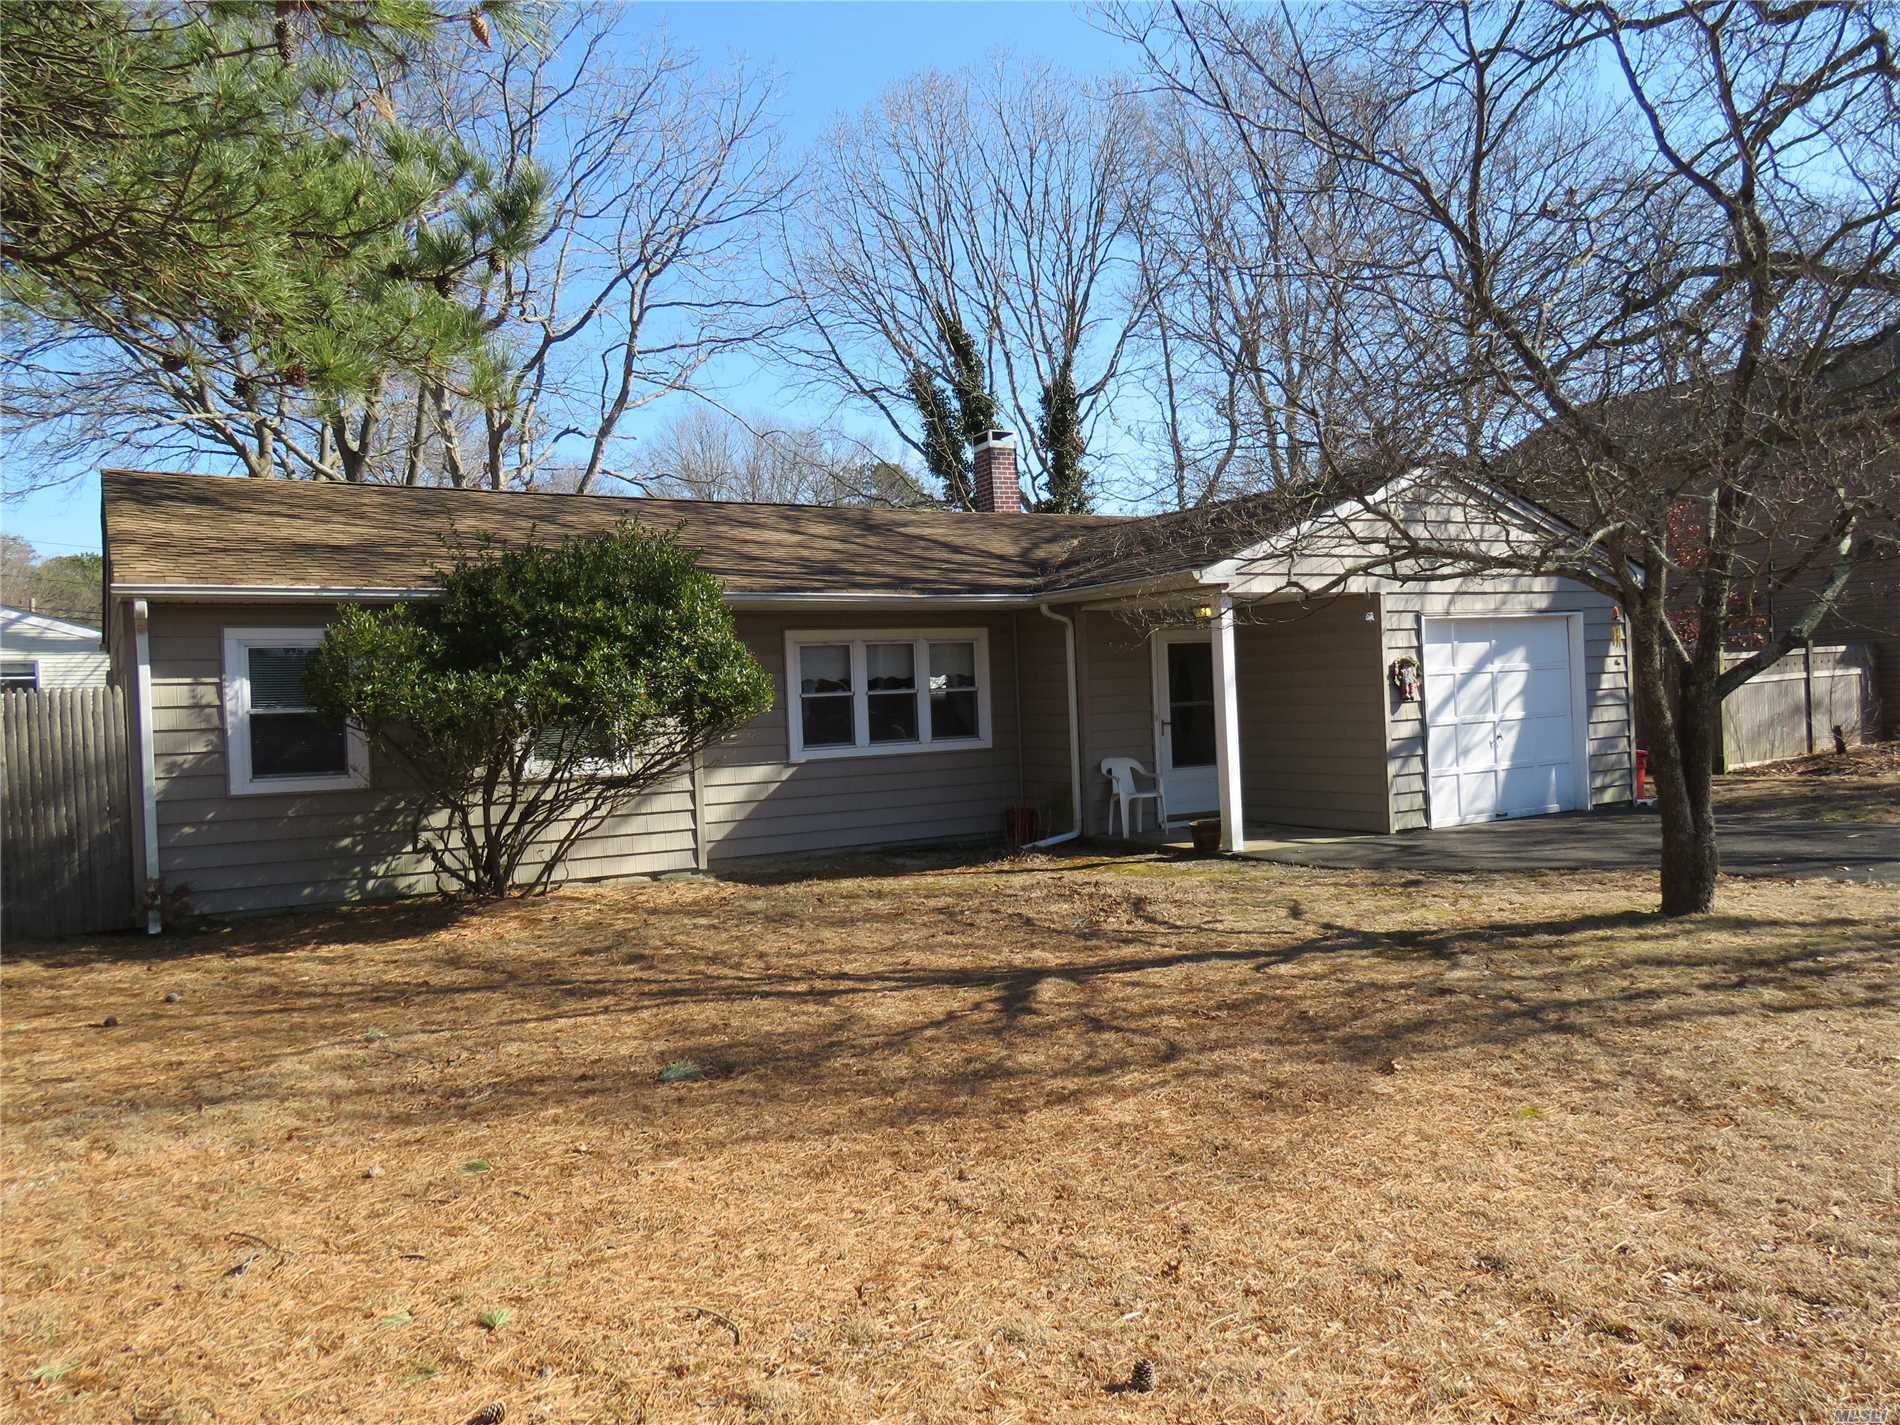 Lots Of Potential! This 3 Bedroom, 1Full Bath Ranch Is Located In The Desirable Area Of Manor Park. Spacious Eat-N-Kitchen With Sliding Doors To Private Yard. Living Room W/ Picture Window. Master Bedroom, 2 Bedroom And Full Bath. Laundry Rm, 1 Car Garage. Fenced Yard.